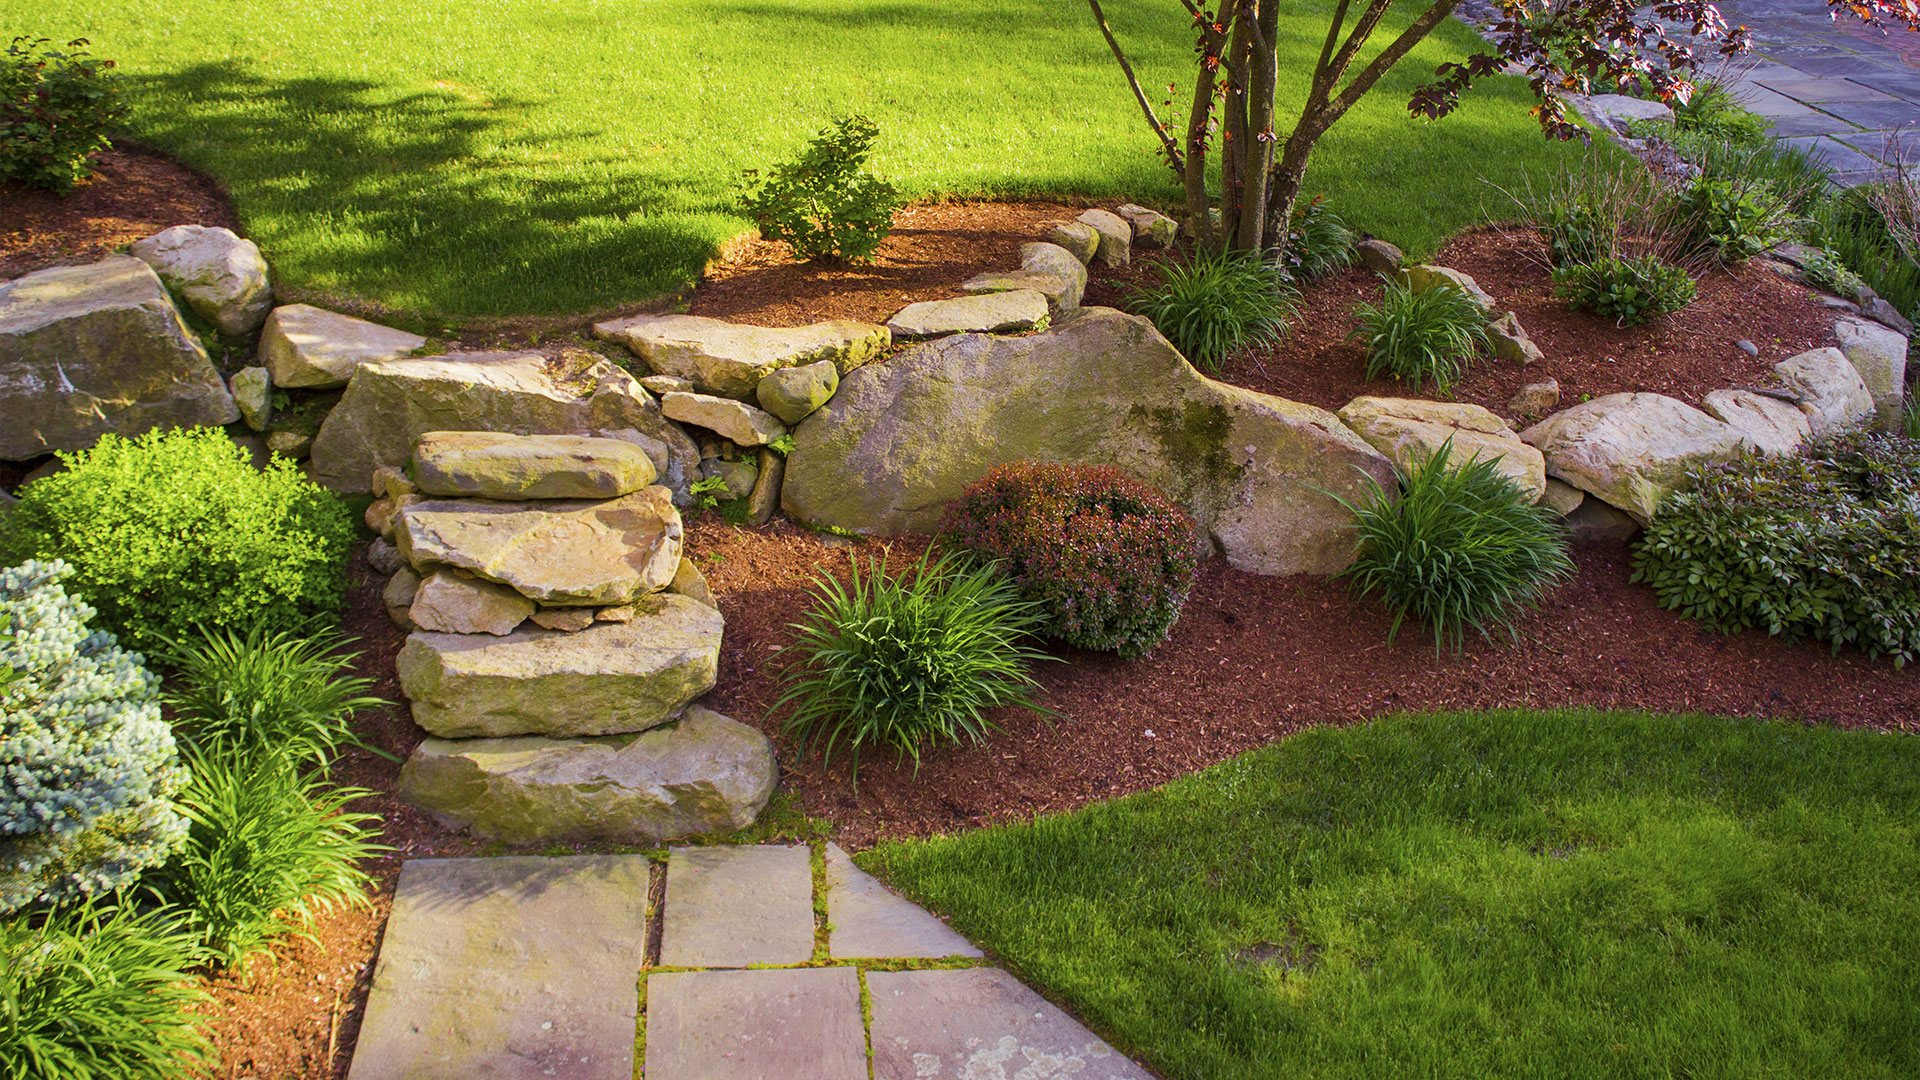 Home rockville landscaping weed control and lawn care for Garden designs and landscapes